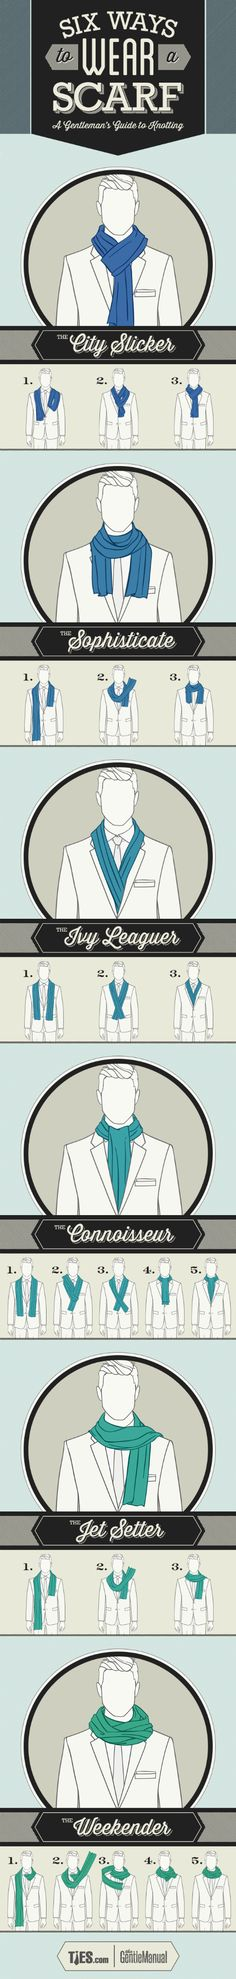 ~The Ultimate Gentleman Cheat Sheet Every Man Needs how to wear a scarve | The House of Beccaria